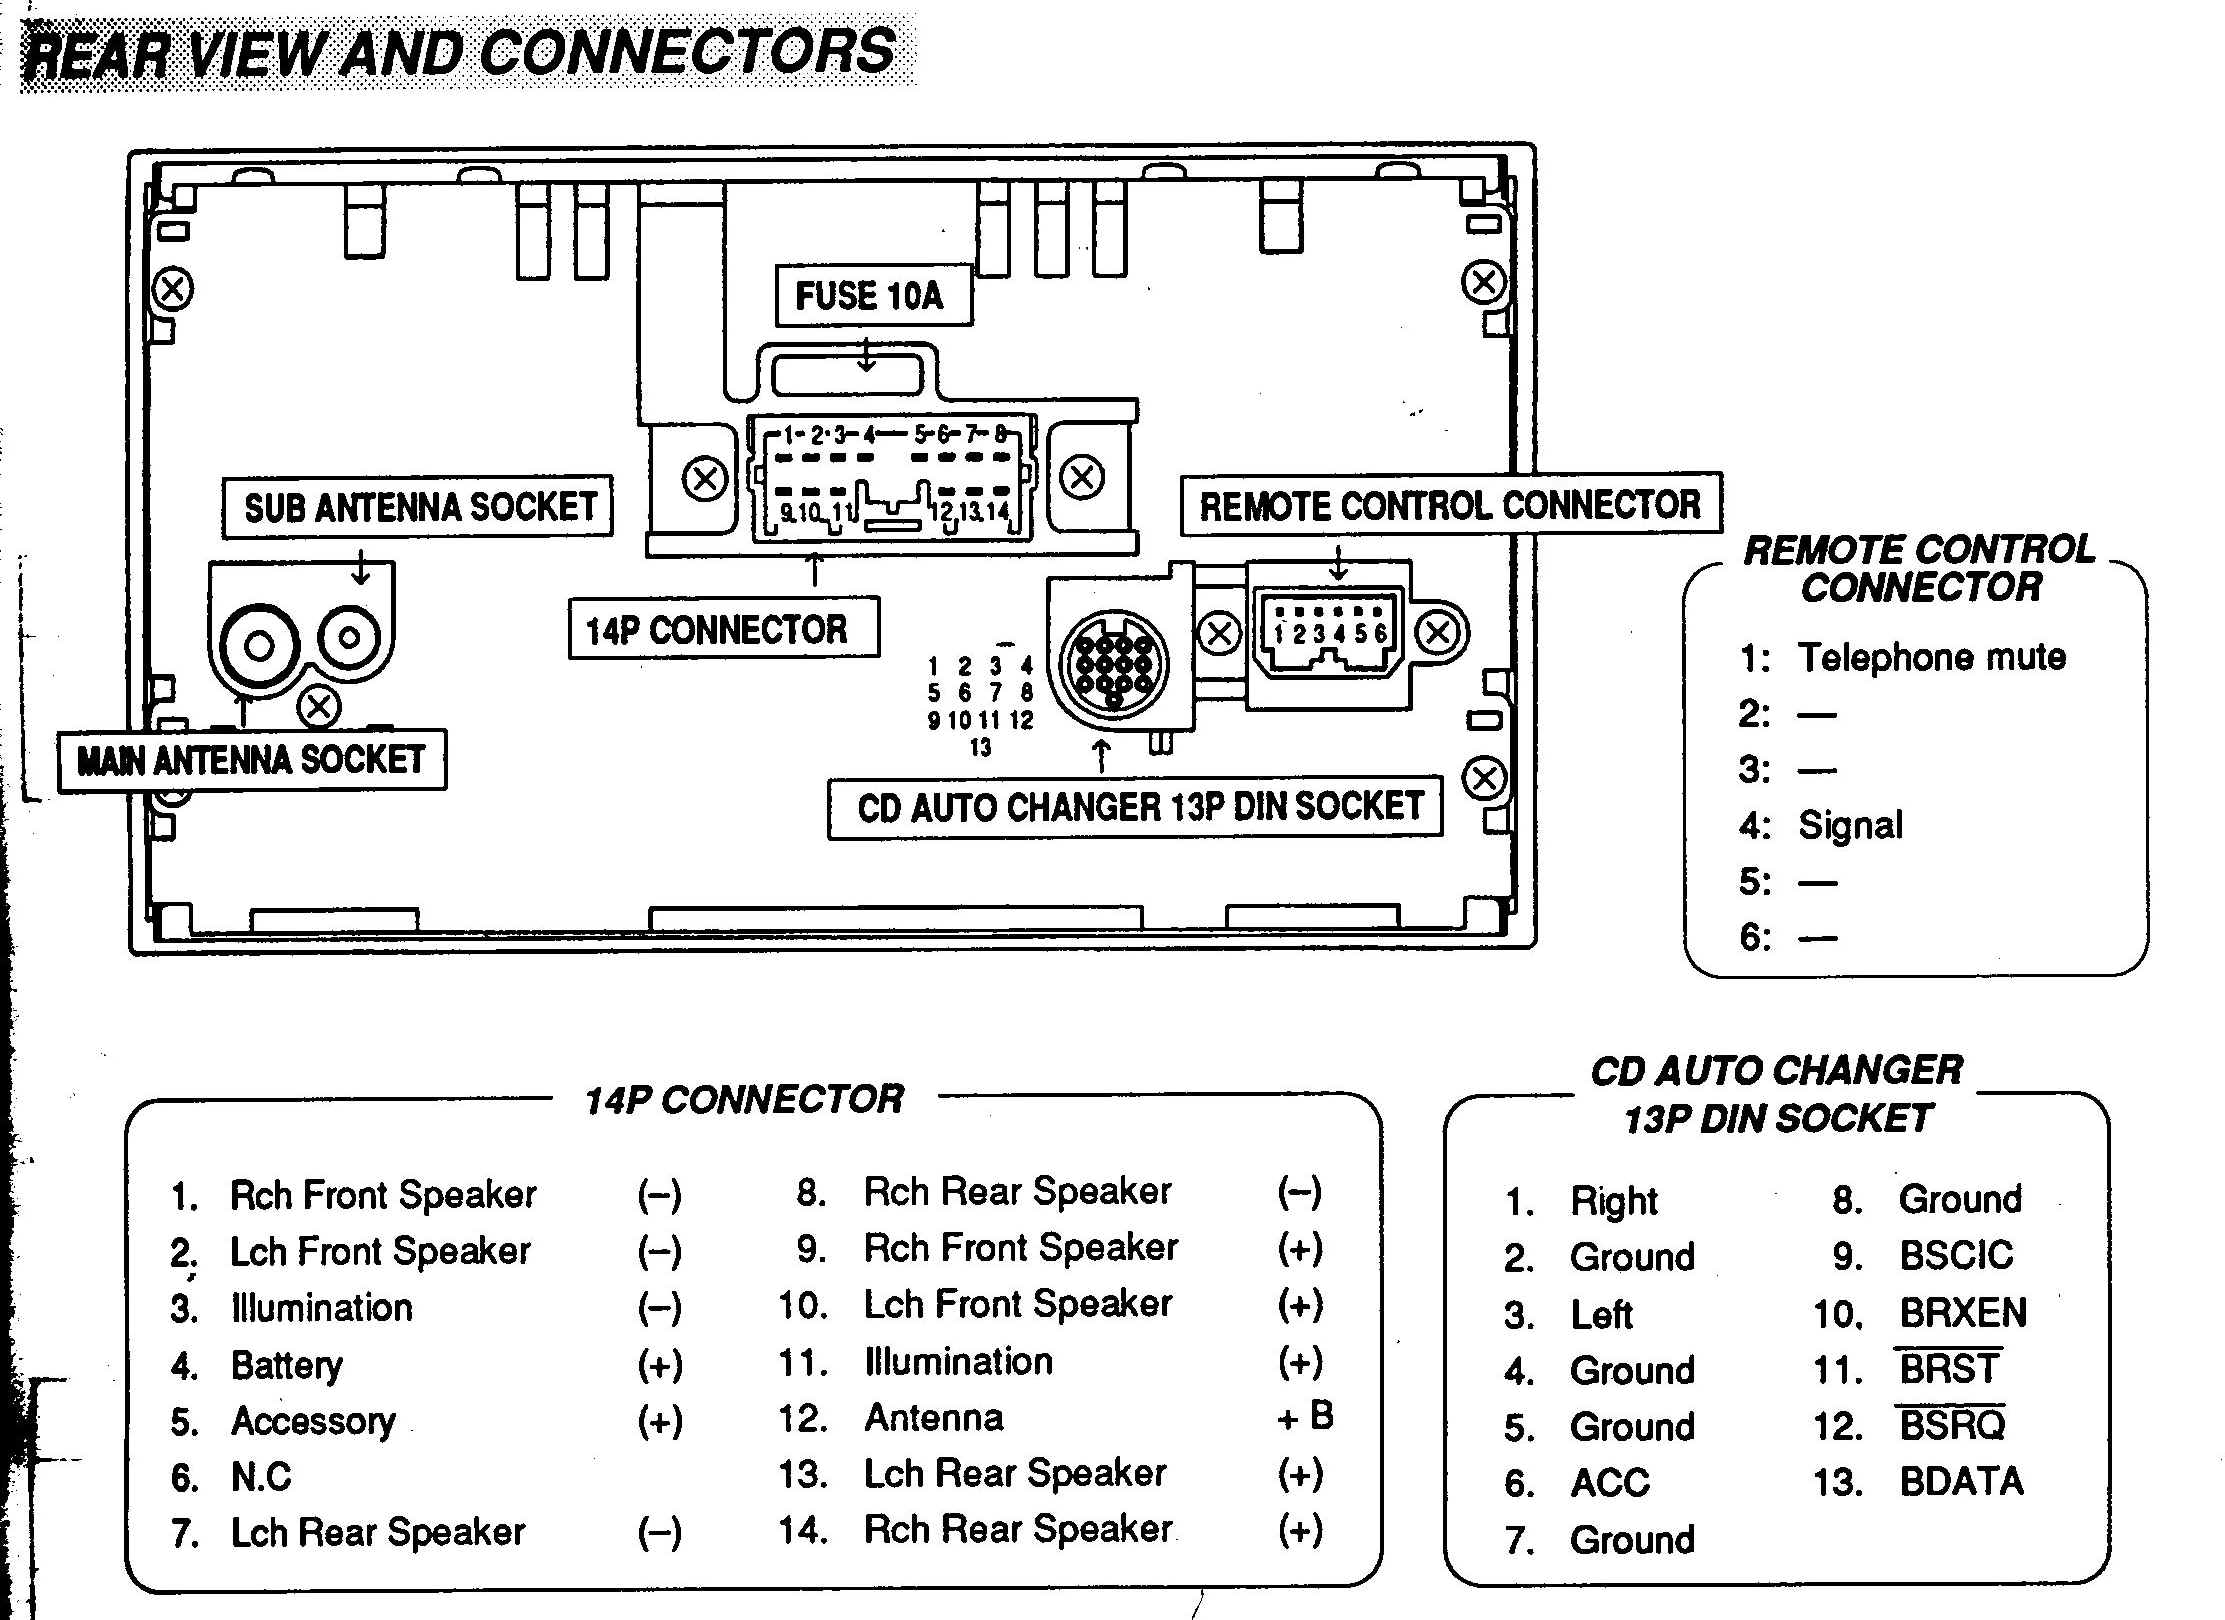 Car Stereo Help Wire Color Code Diagrams And Wiring Diagram For 1997 Acura Rl Repair Harness Codes Bose Speaker